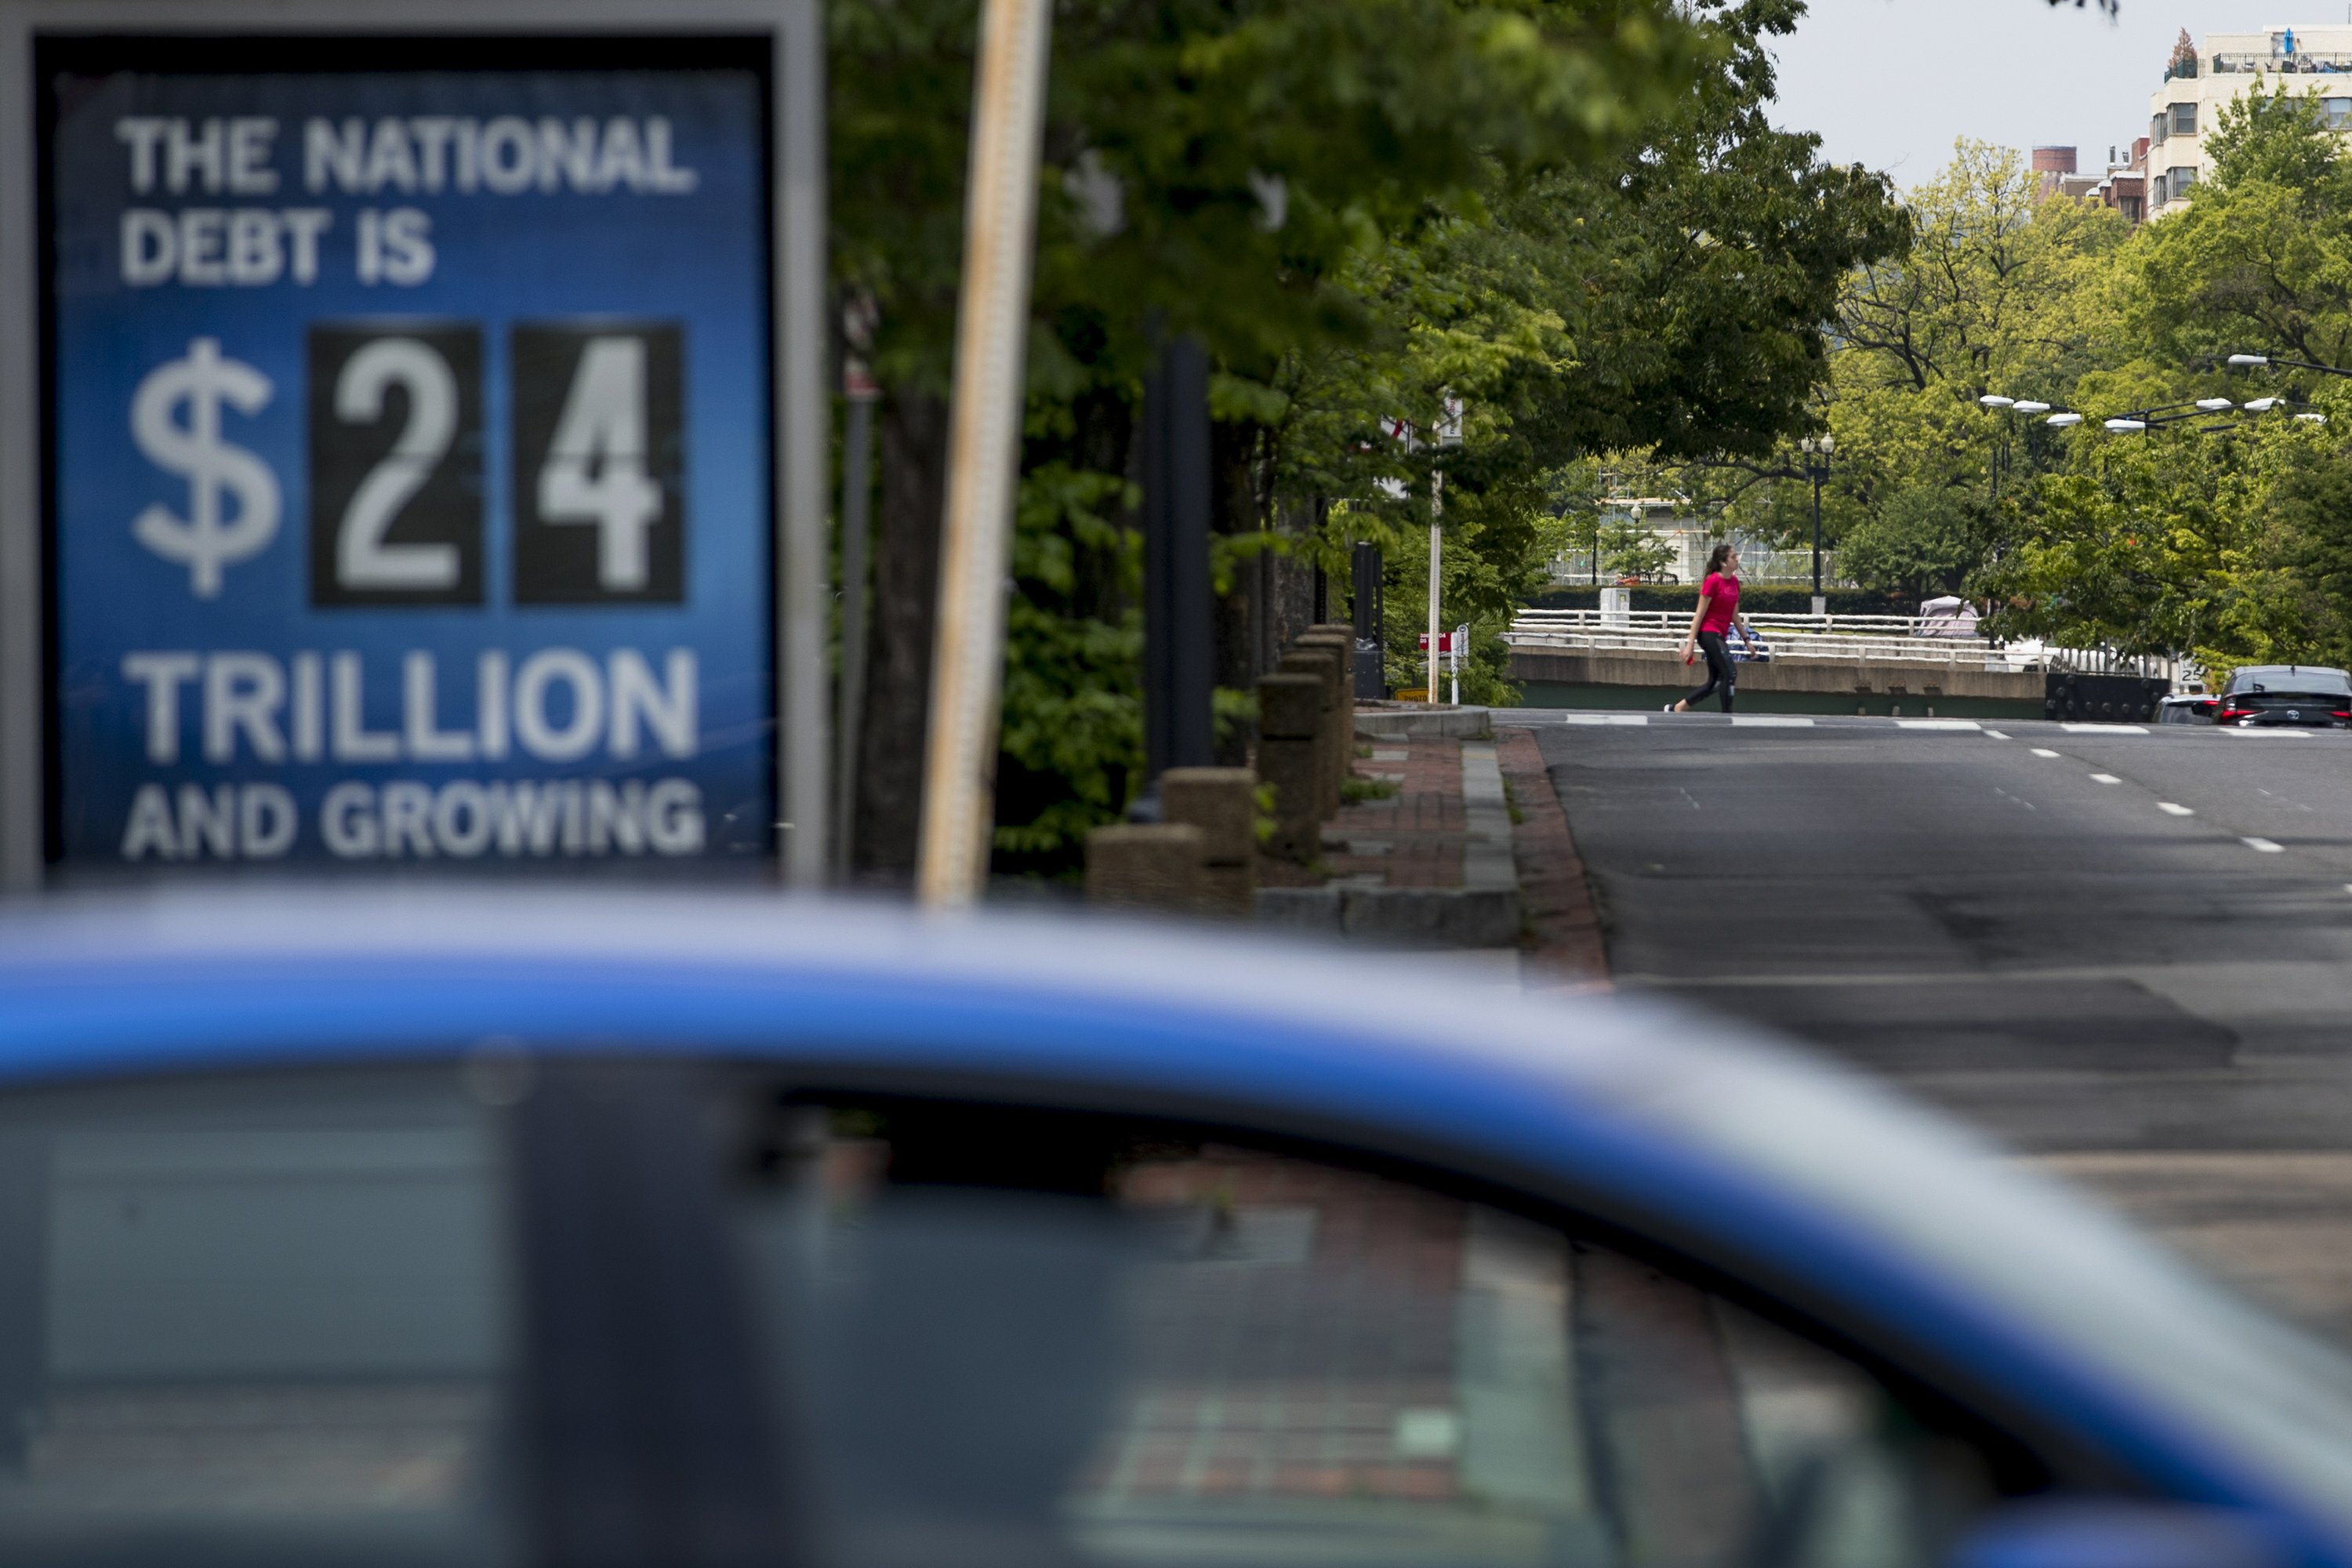 AP Explains: US debt will soon exceed size of entire economy